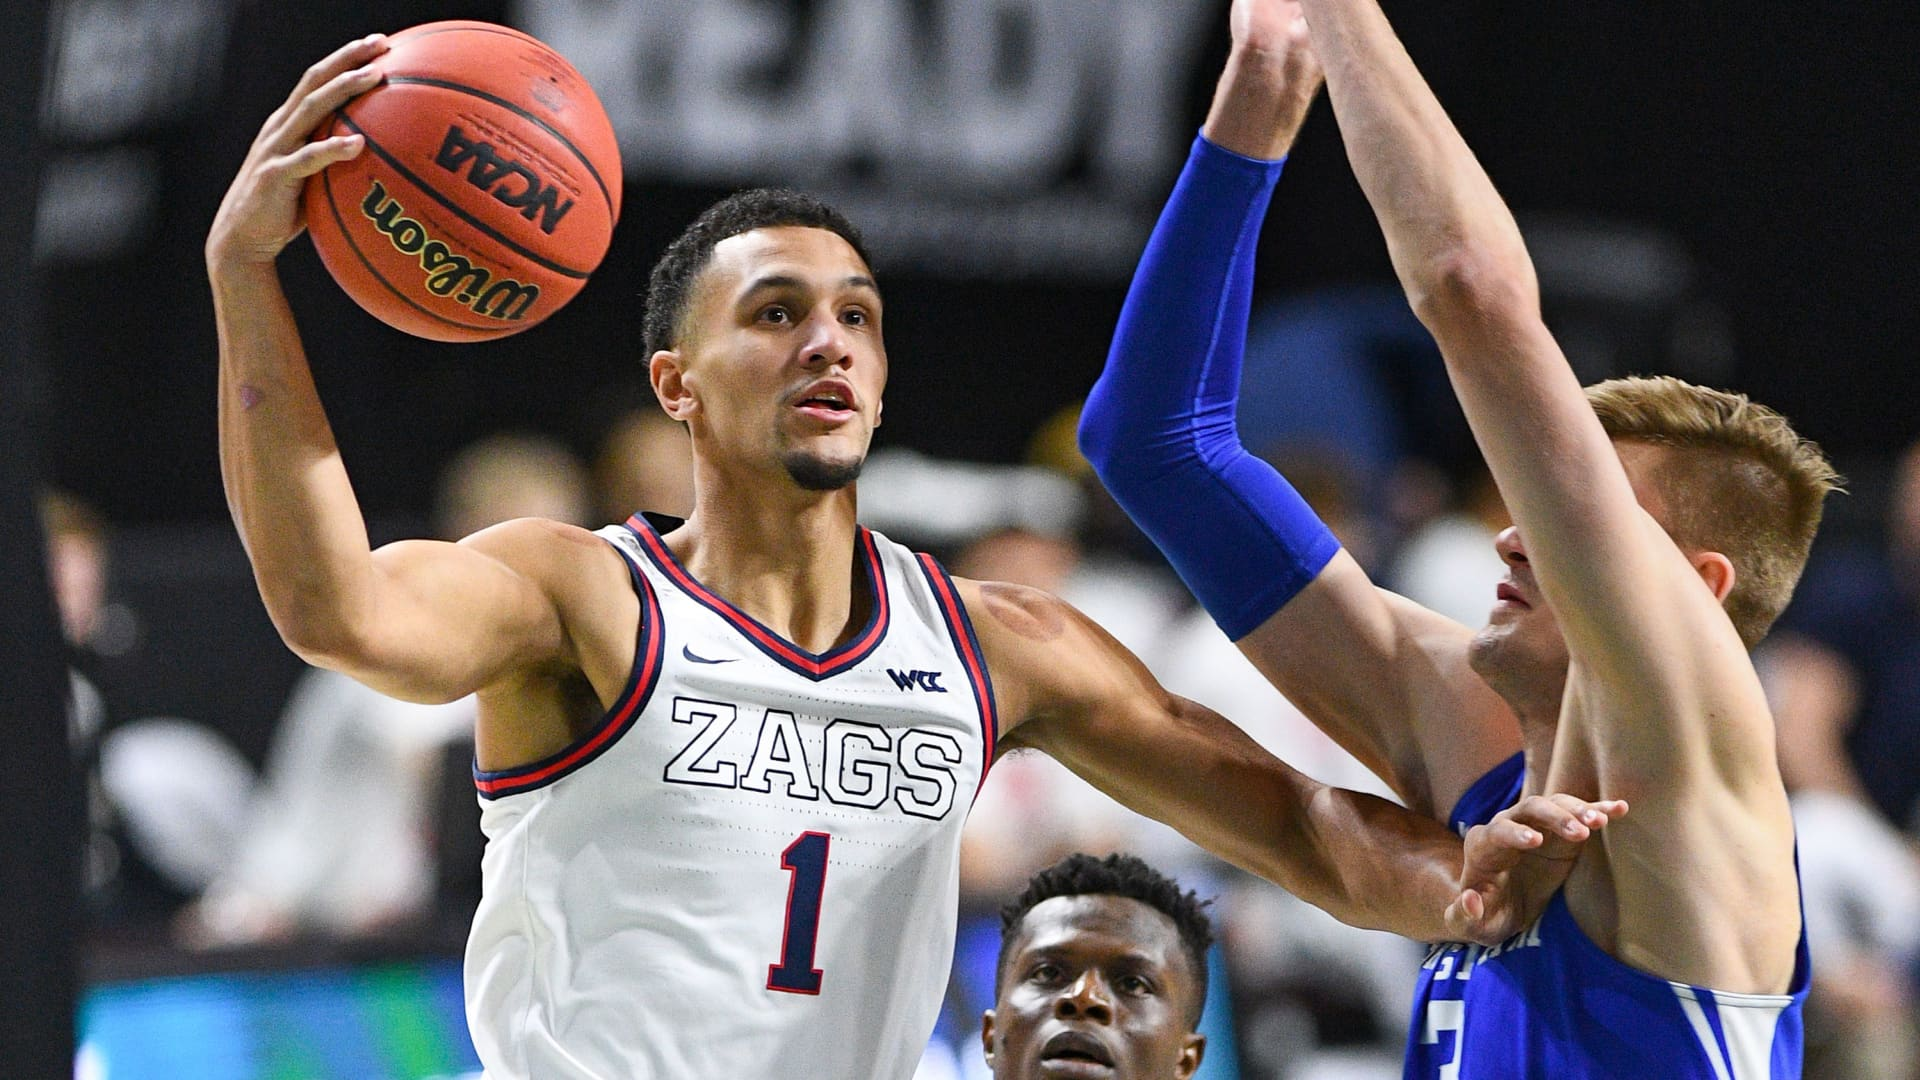 Gonzaga guard Jalen Suggs (1) drives to the basket against BYU forward Matt Haarms (3) during the championship game of the men's West Coast Conference basketball tournament between the BYU Cougars and the Gonzaga Bulldogs on March 9, 2021, at the Orleans Arena in Las Vegas, NV.